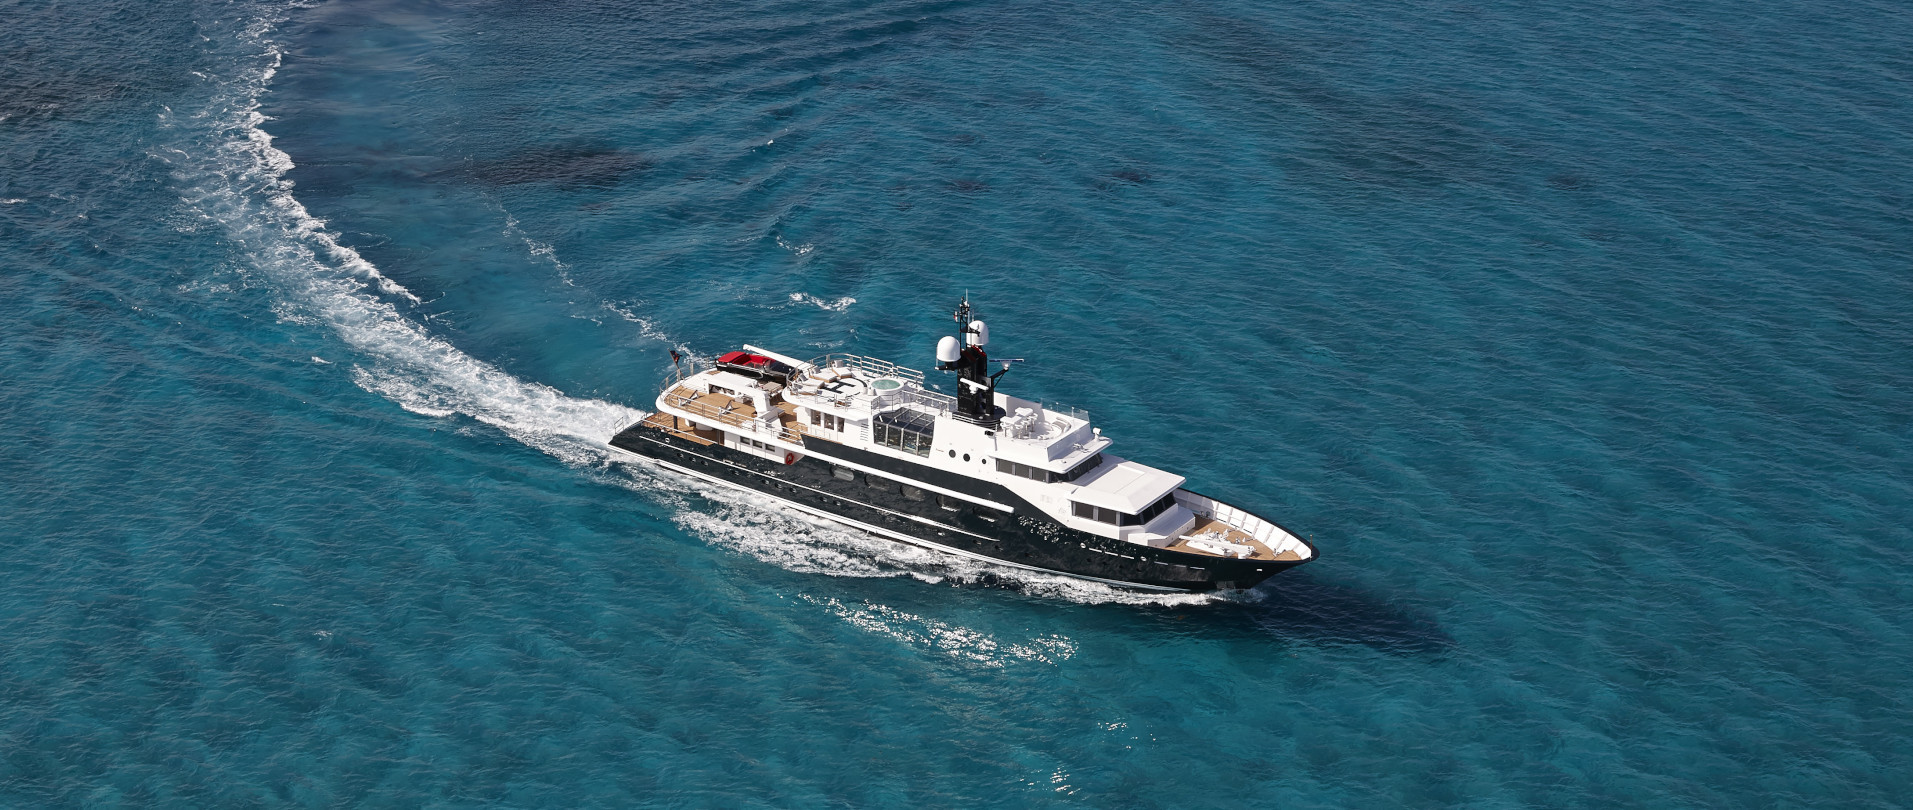 Highlander - Extraordinary deal for January charters: US$60,000 p/w photo 1